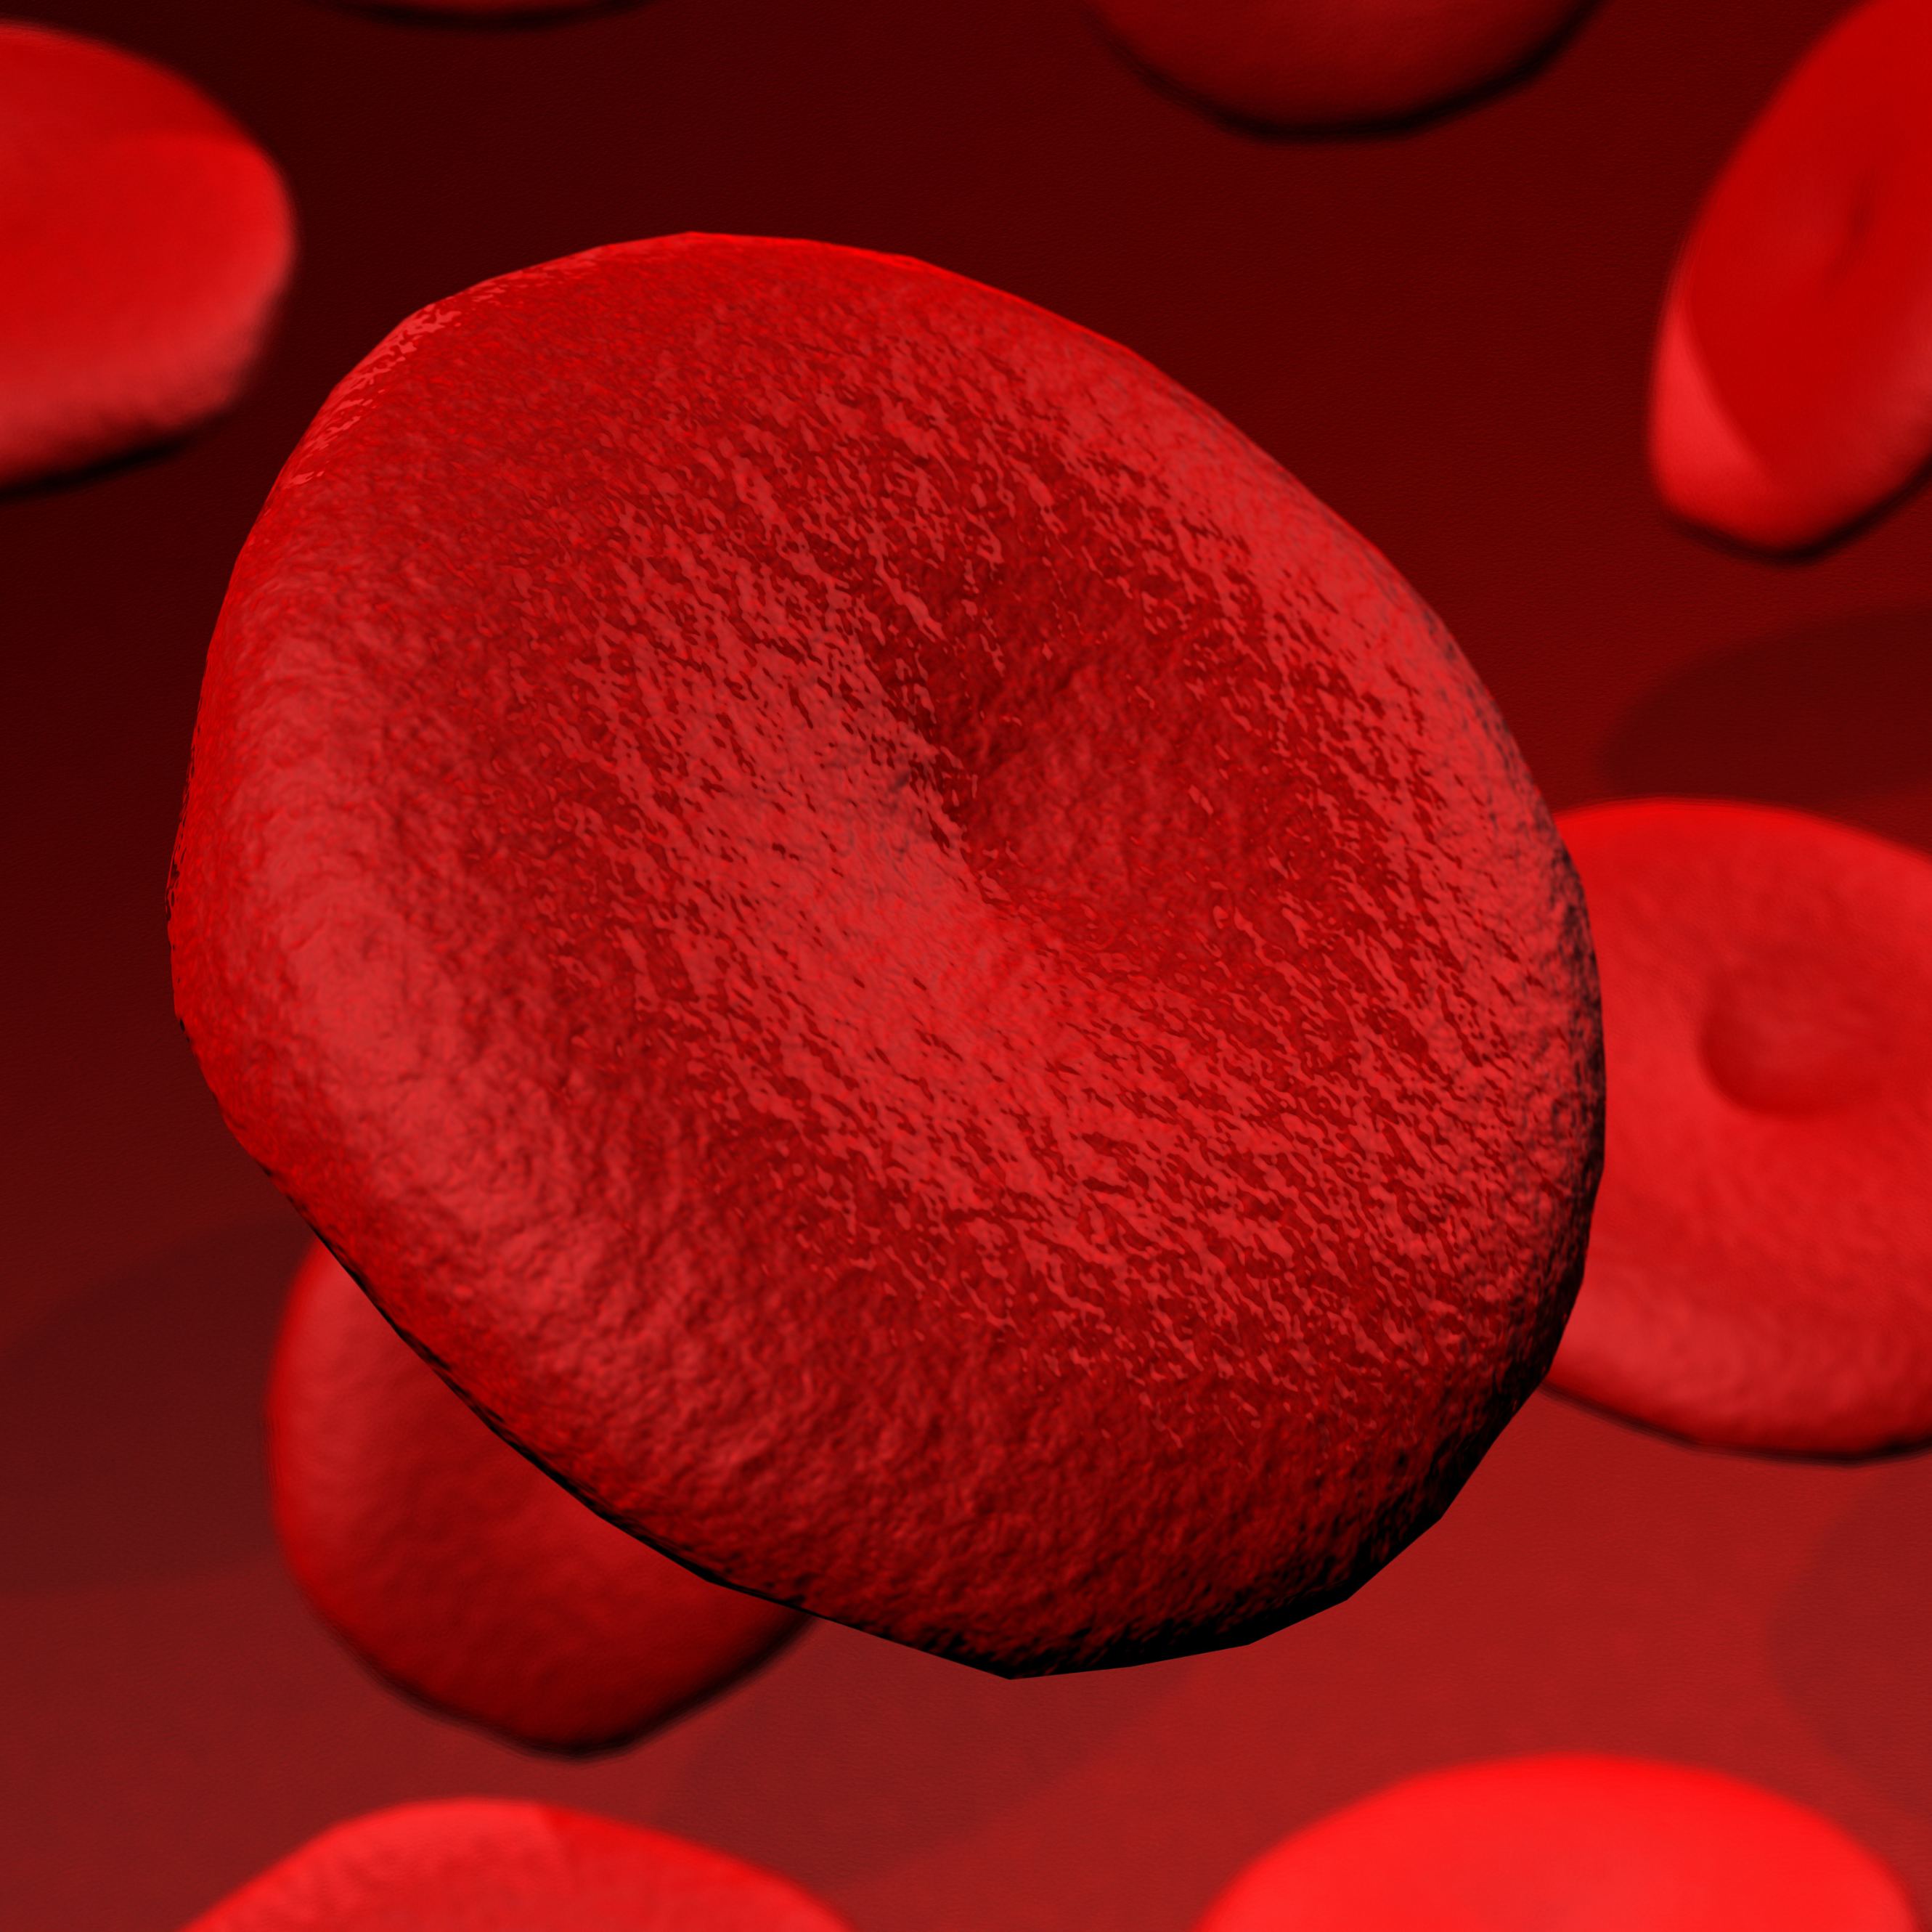 Sickle Cell Graphic